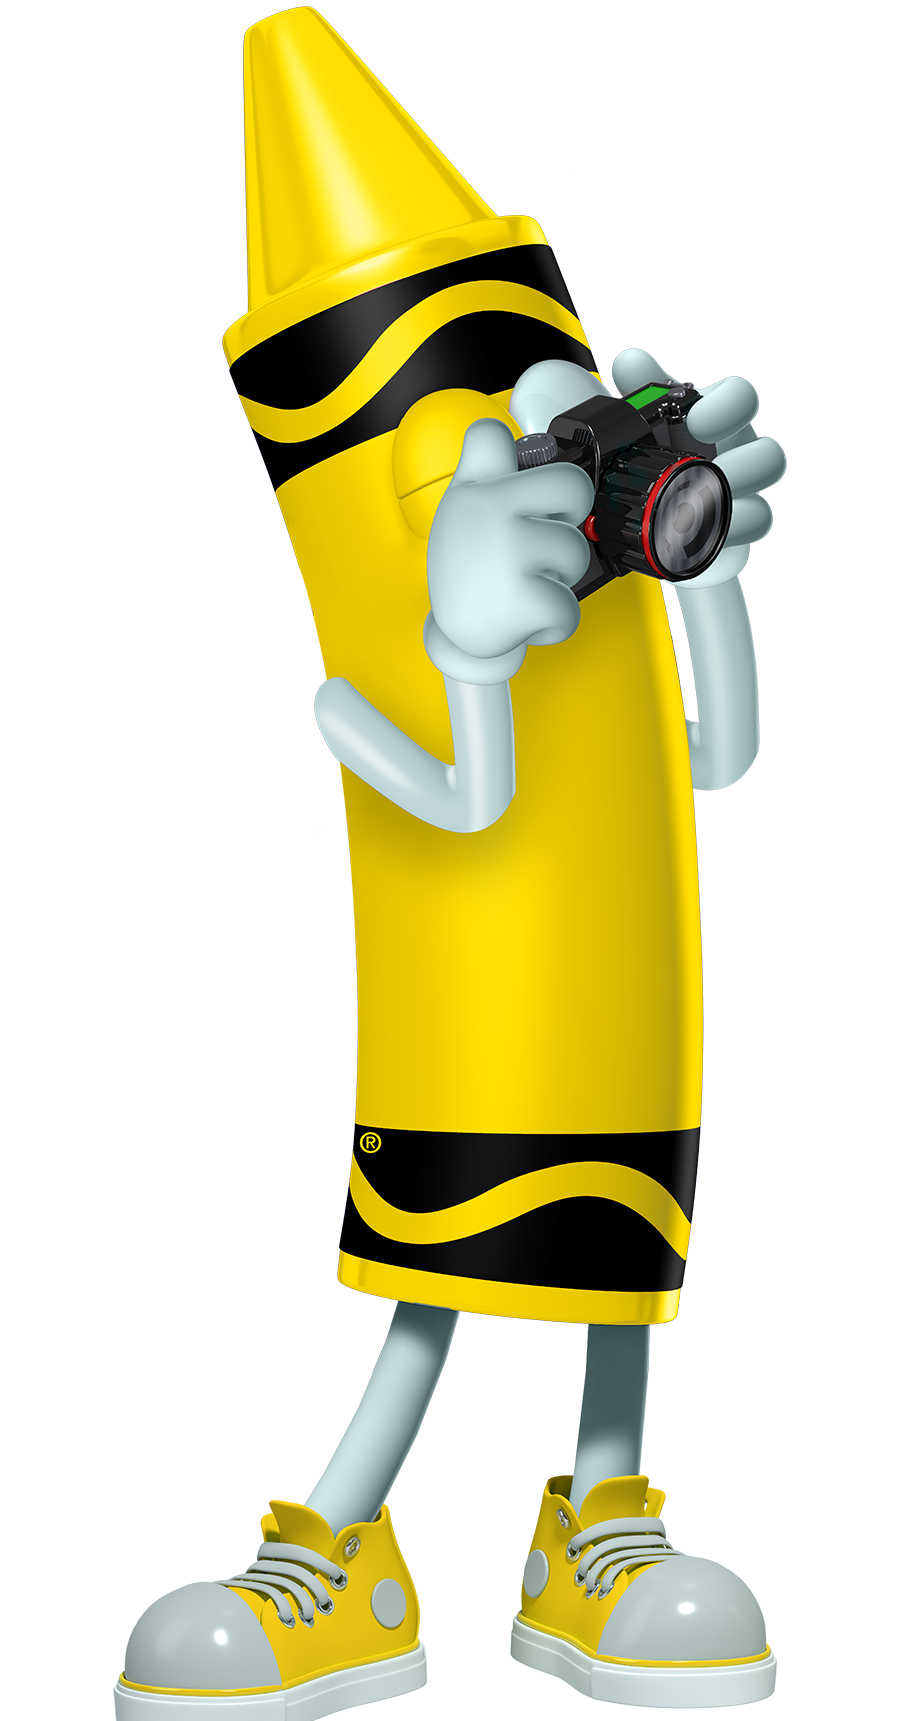 Yellow crayon cartoon character taking a picture